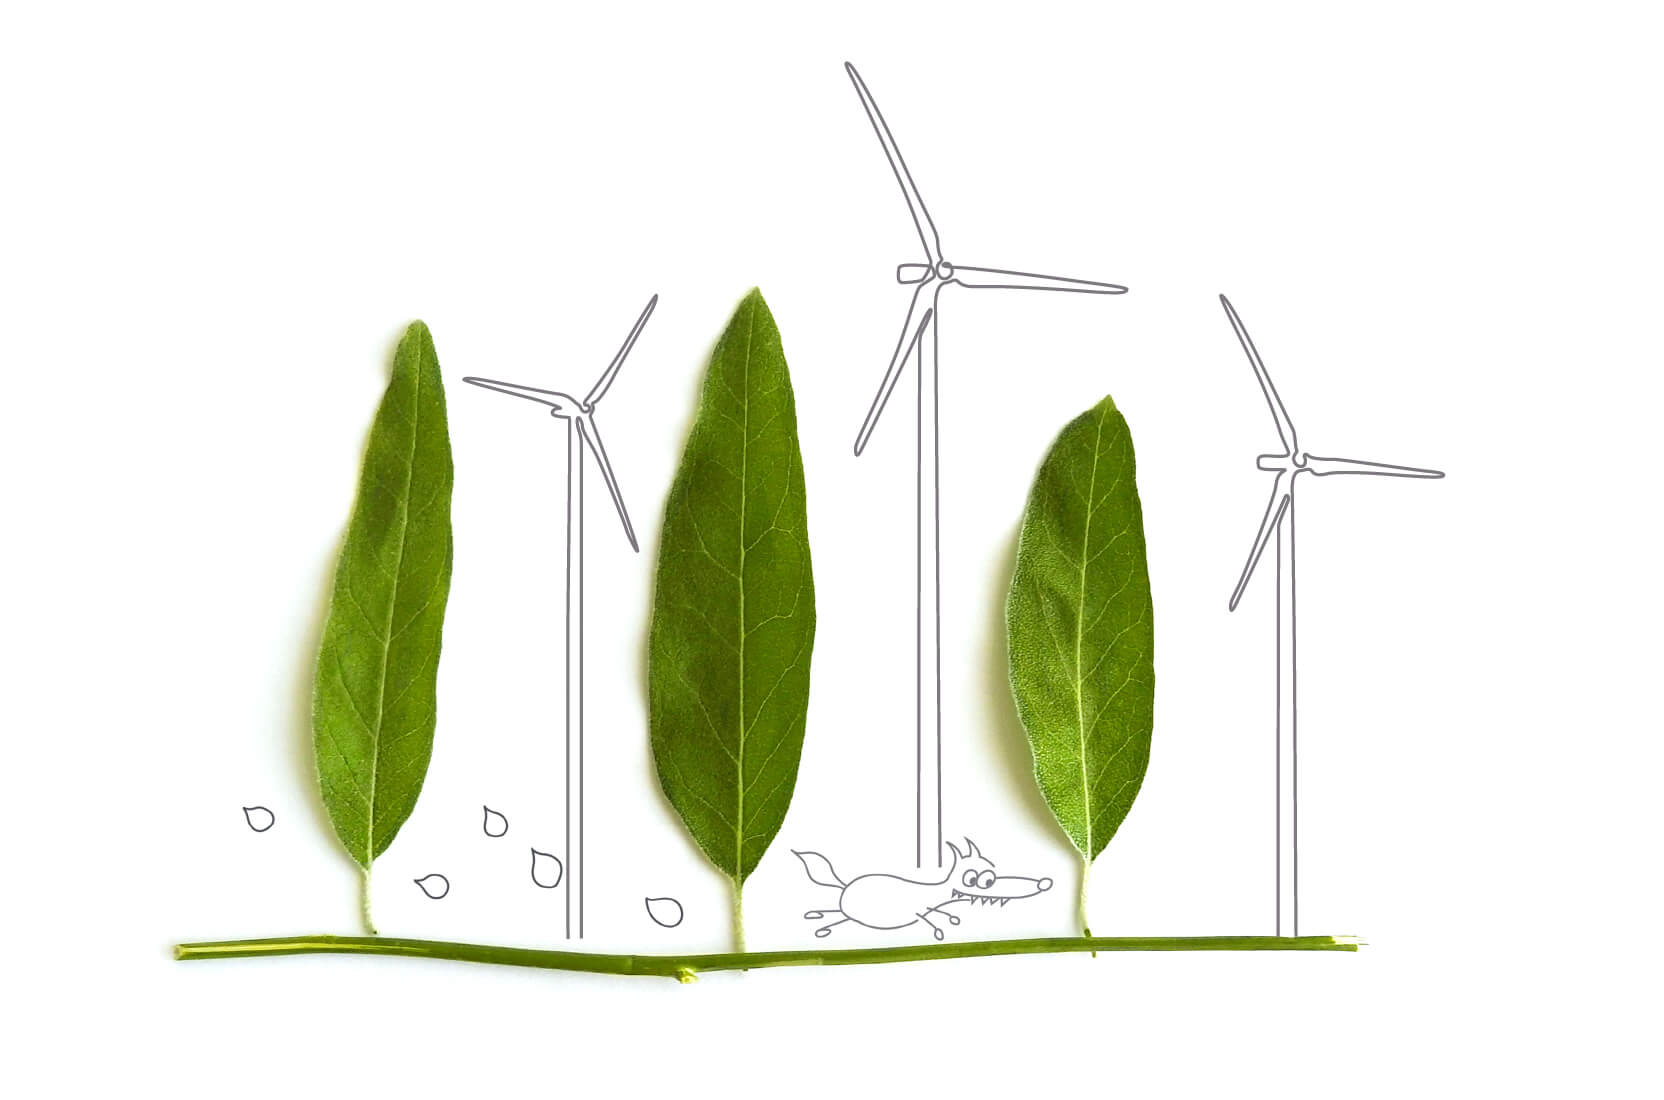 Tecnologia Green Systems srl minieolico